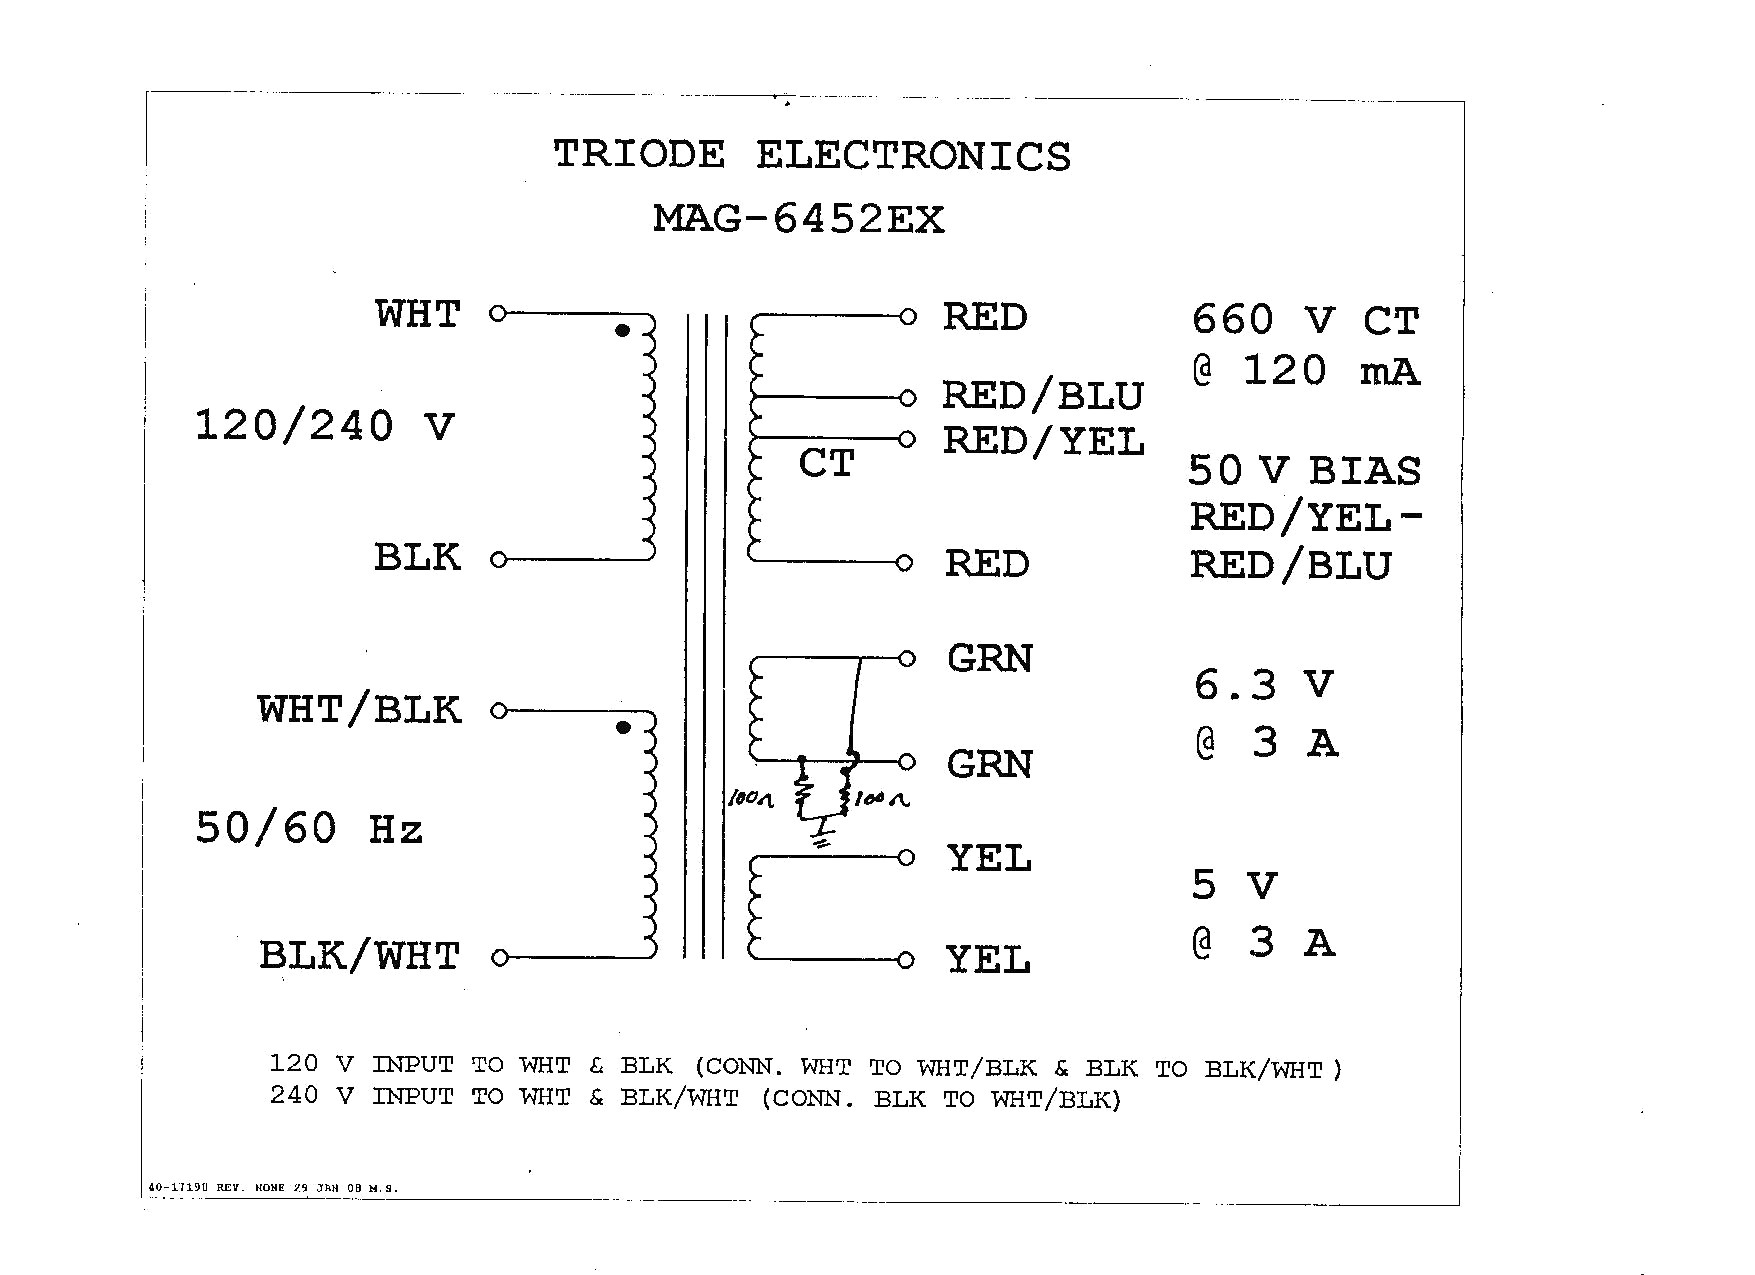 square d control transformer wiring diagram Download-Wiring Diagram Sheets Detail Name industrial control transformer wiring diagram – Square D Transformer 5-g